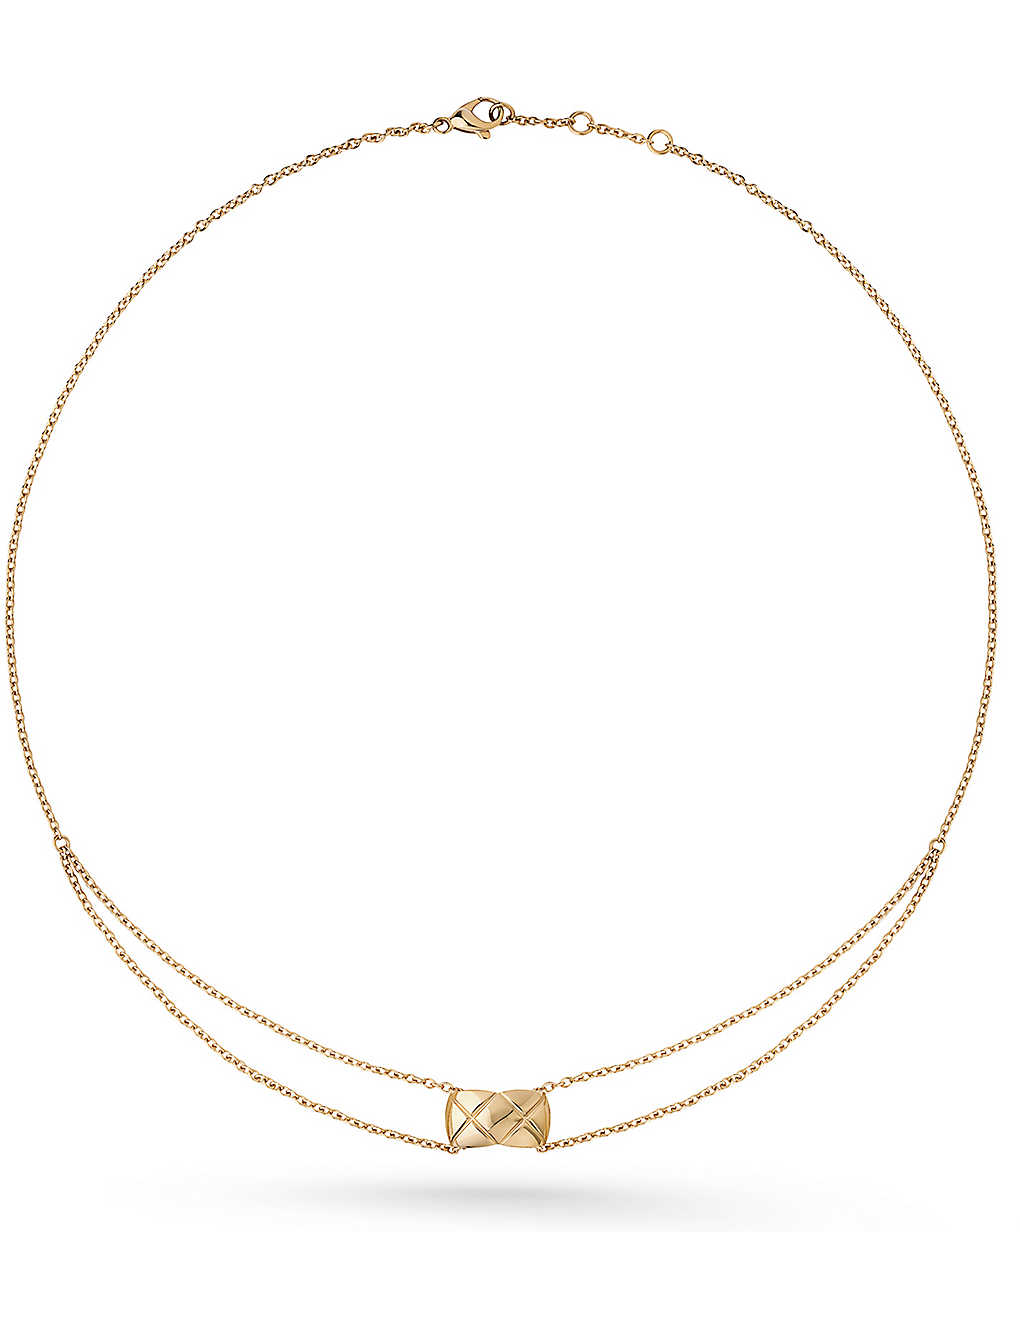 1b7a9edf0aa23d CHANEL - Coco Crush 18K beige gold necklace | Selfridges.com